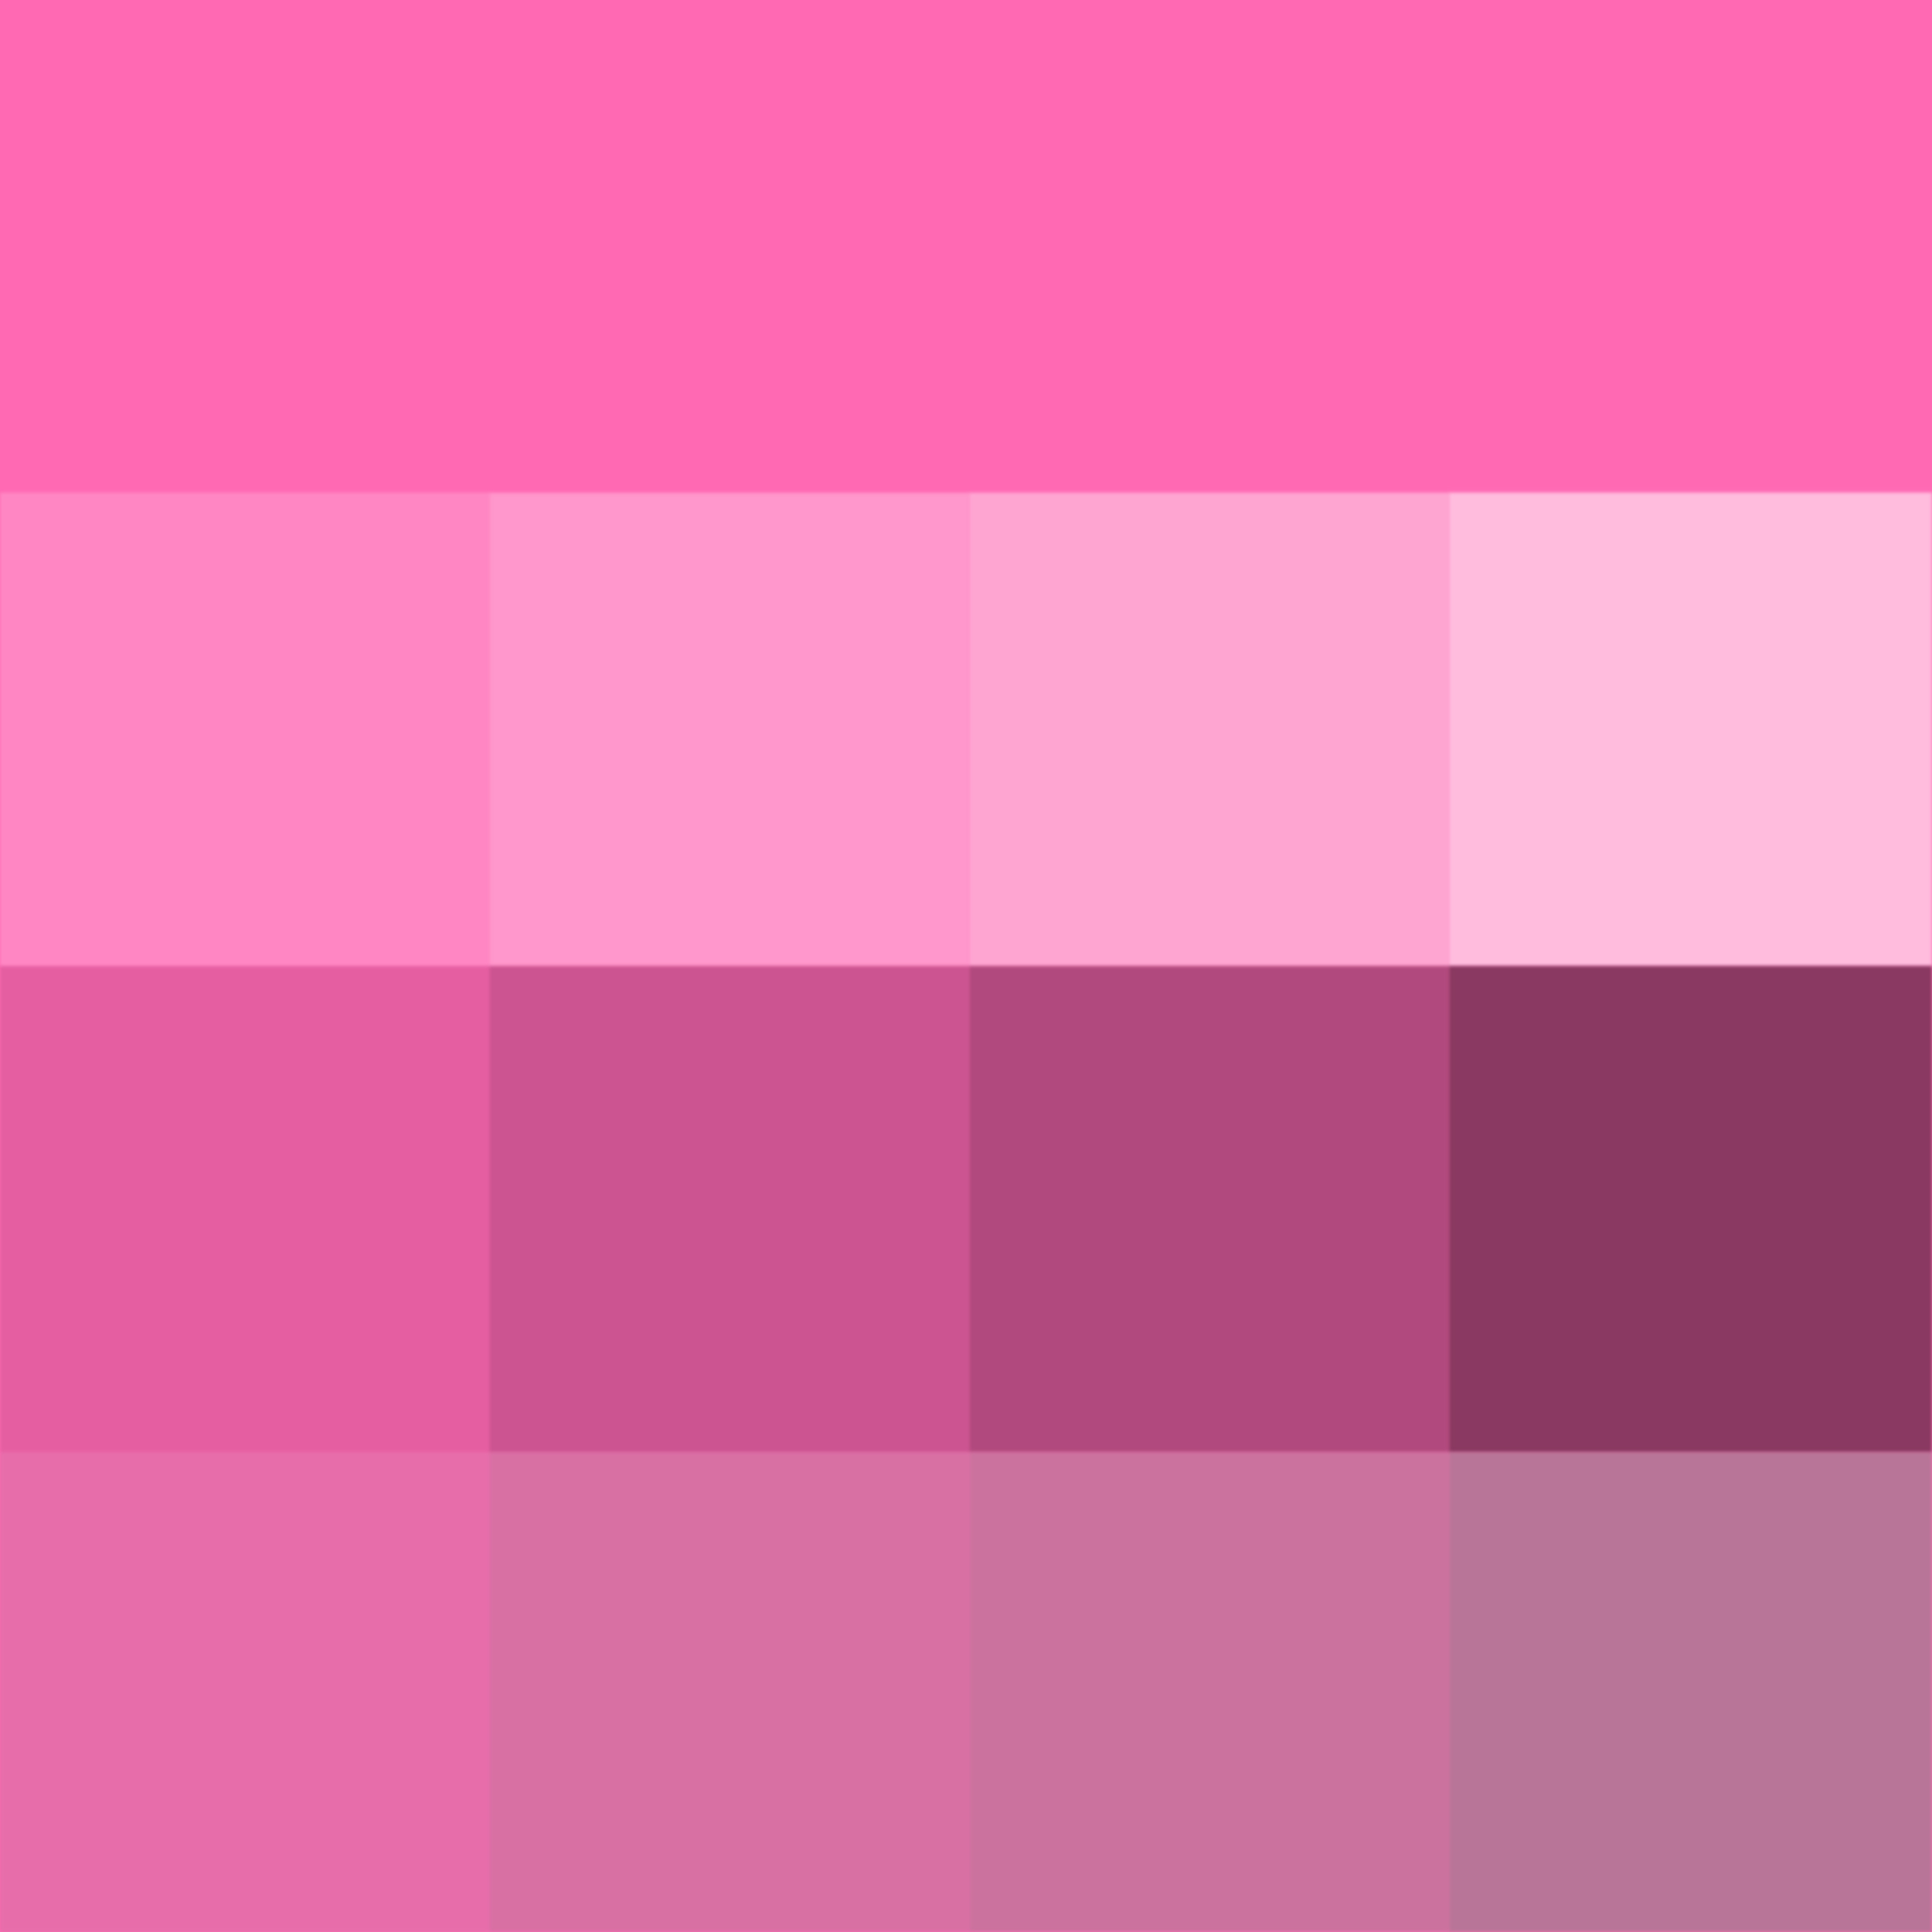 Orange Hue, Tints, Shades & Tones (Hue) ( pure color ) with Tints.